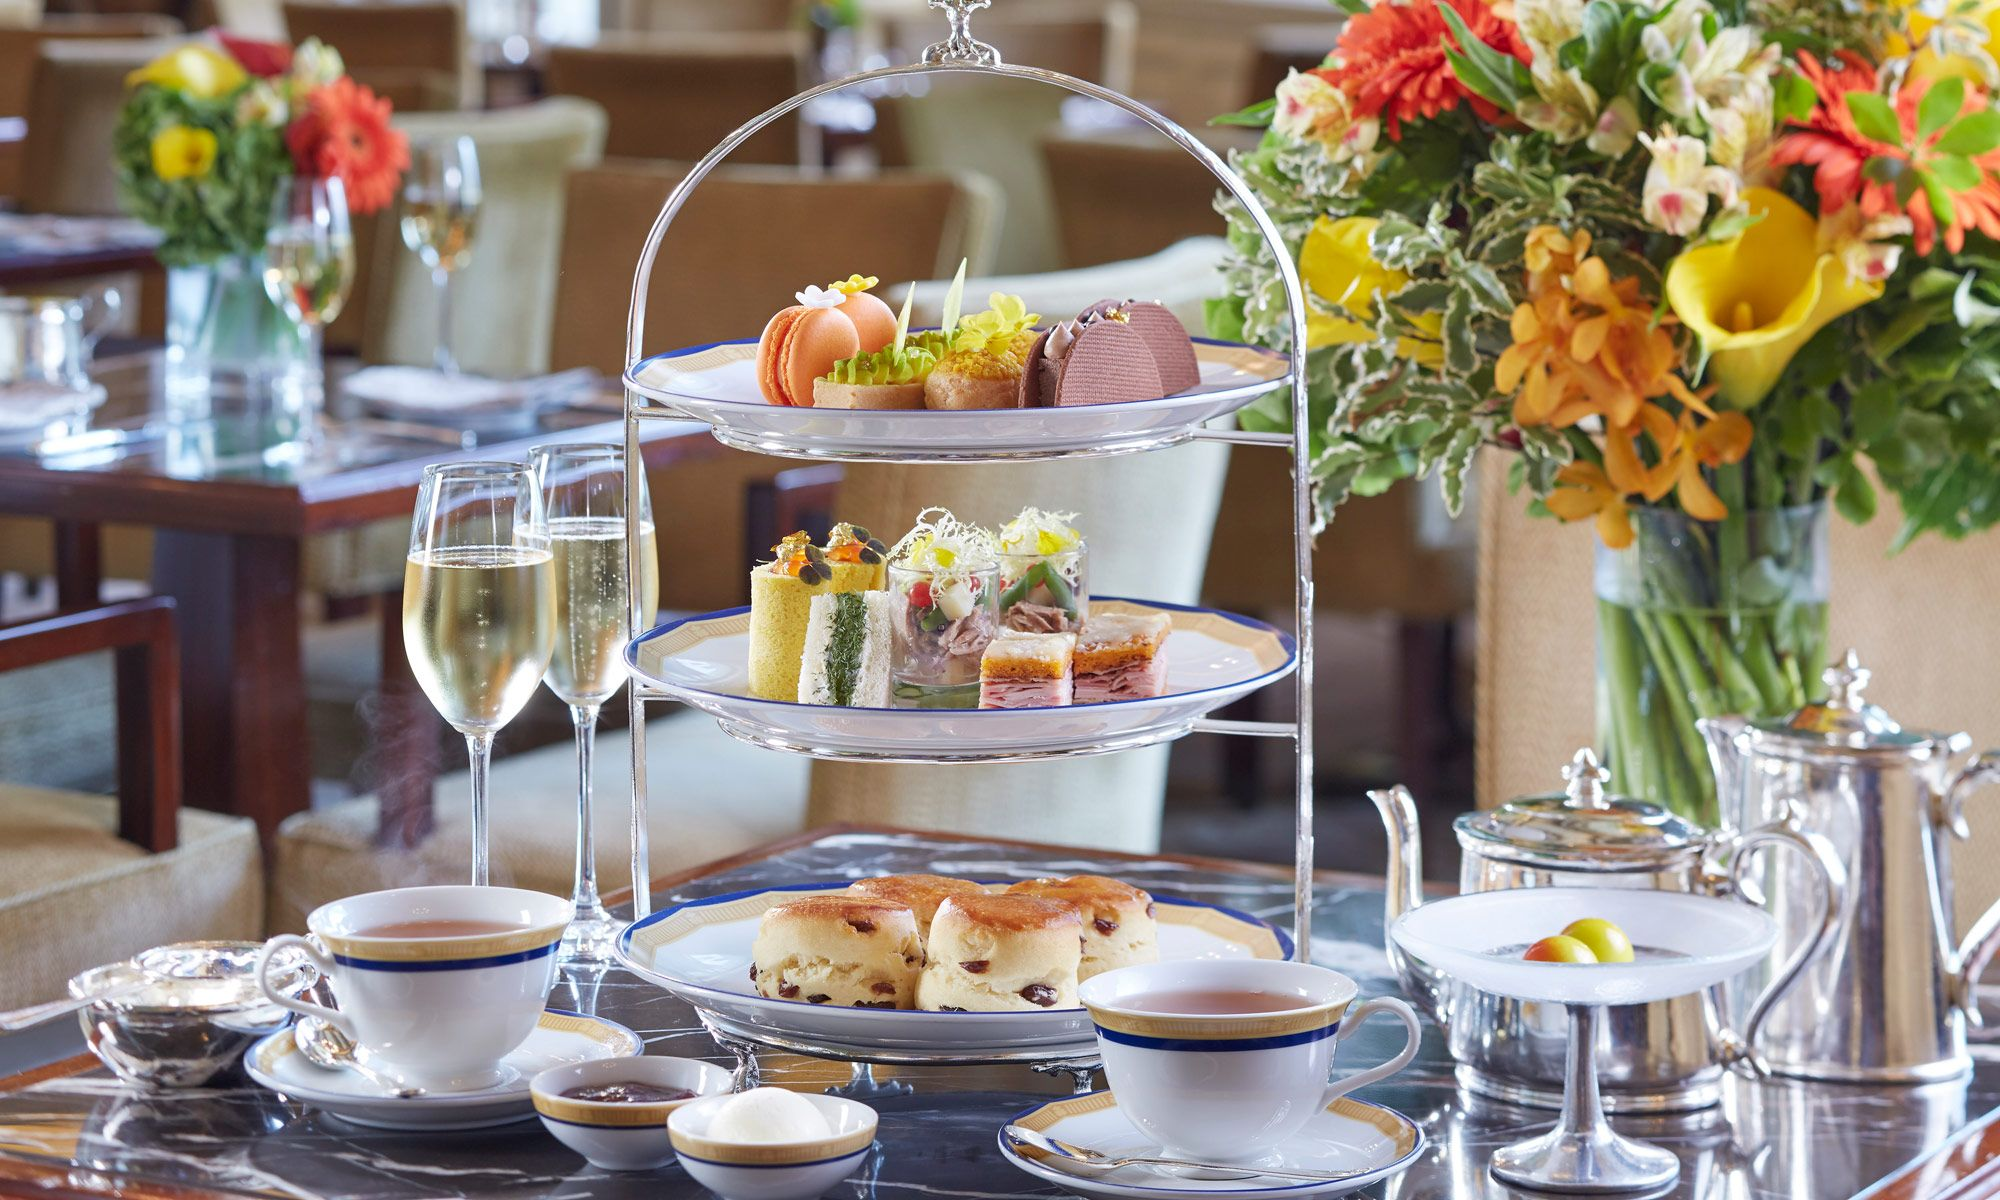 Van Cleef & Arpels Nature Afternoon Tea Launches At The Peninsula